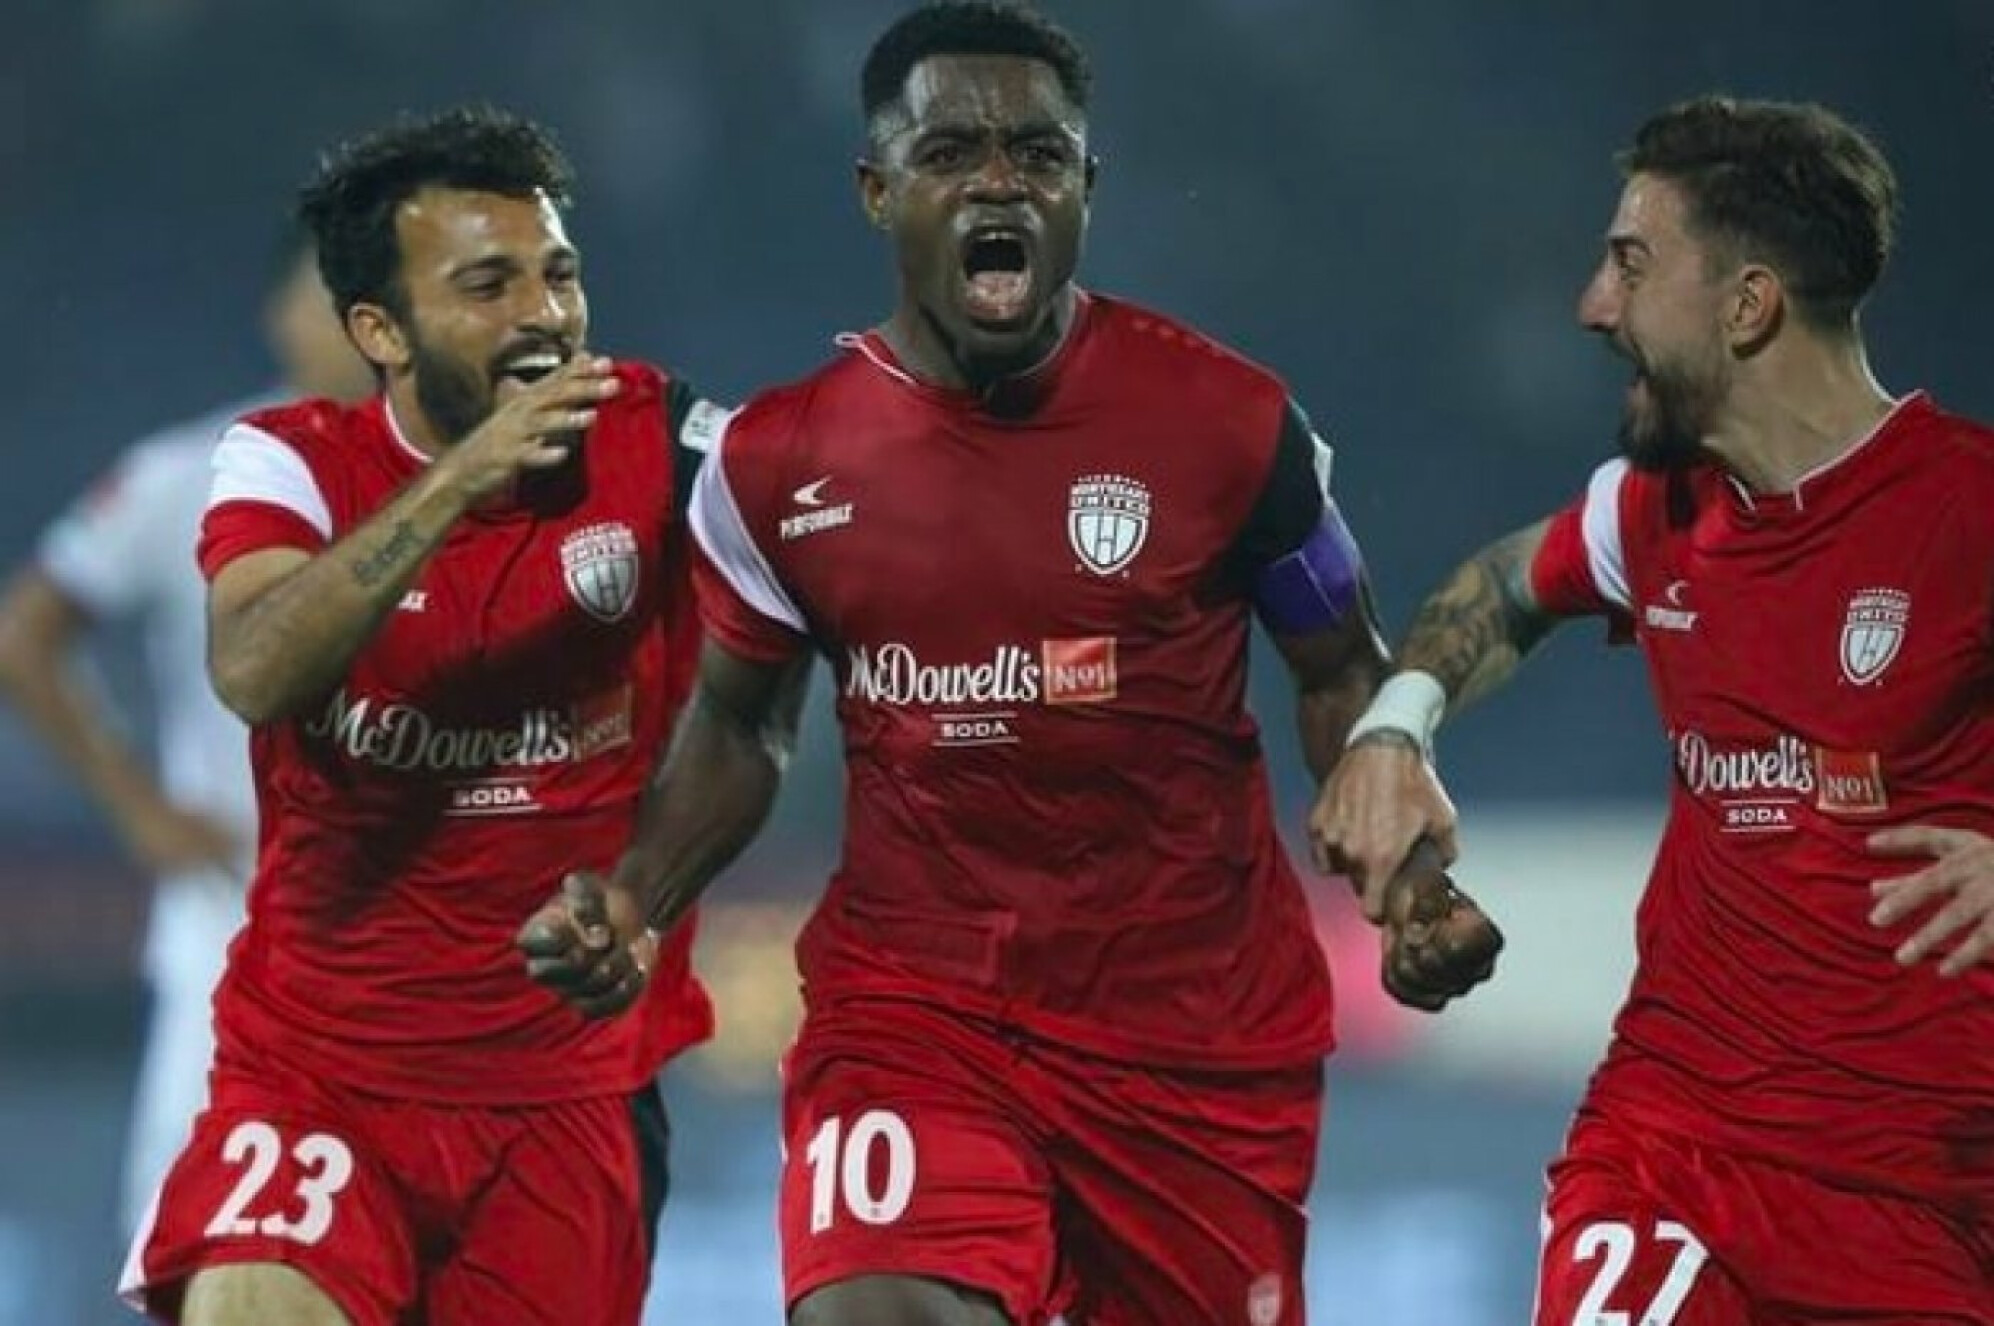 ISL 2018-19: Ogbeche's late stunner ensures full points for hosts Northeast United